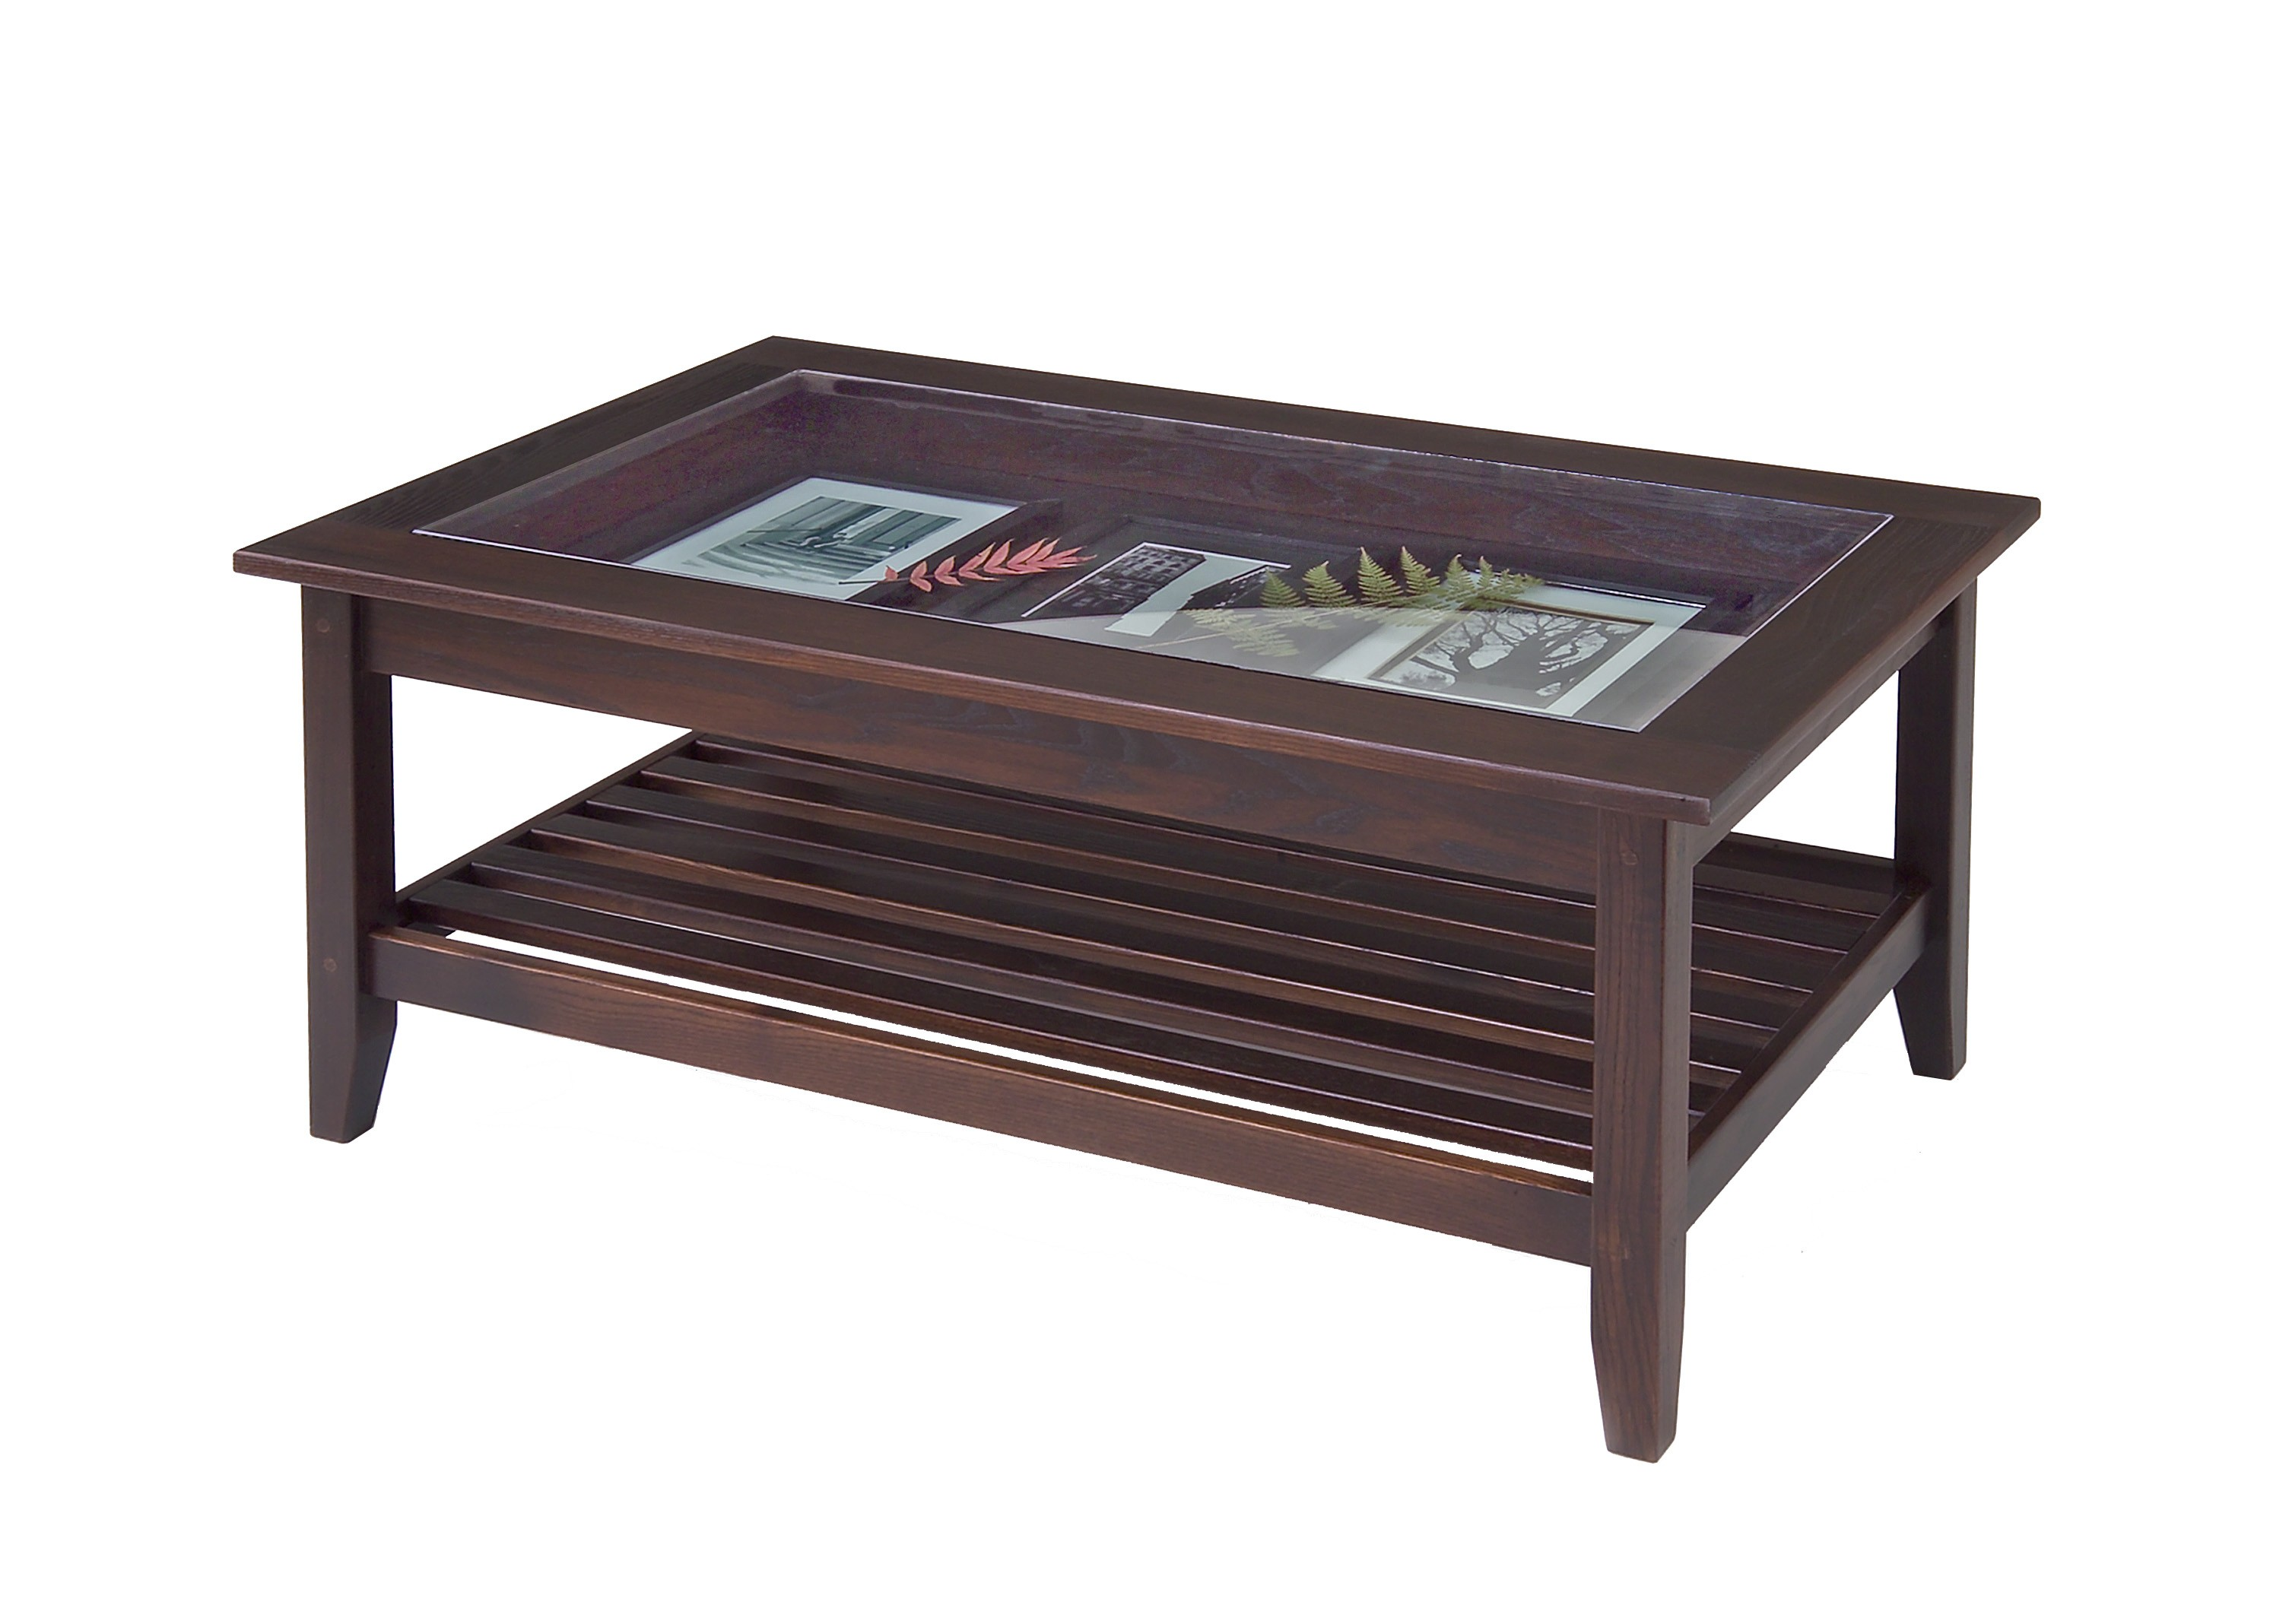 Wood With Glass Top Coffee Table A Glass Top Coffee Table Offers Living In Eloquent Style While Providing Items For Display As Well As Functional Design (Image 2 of 10)